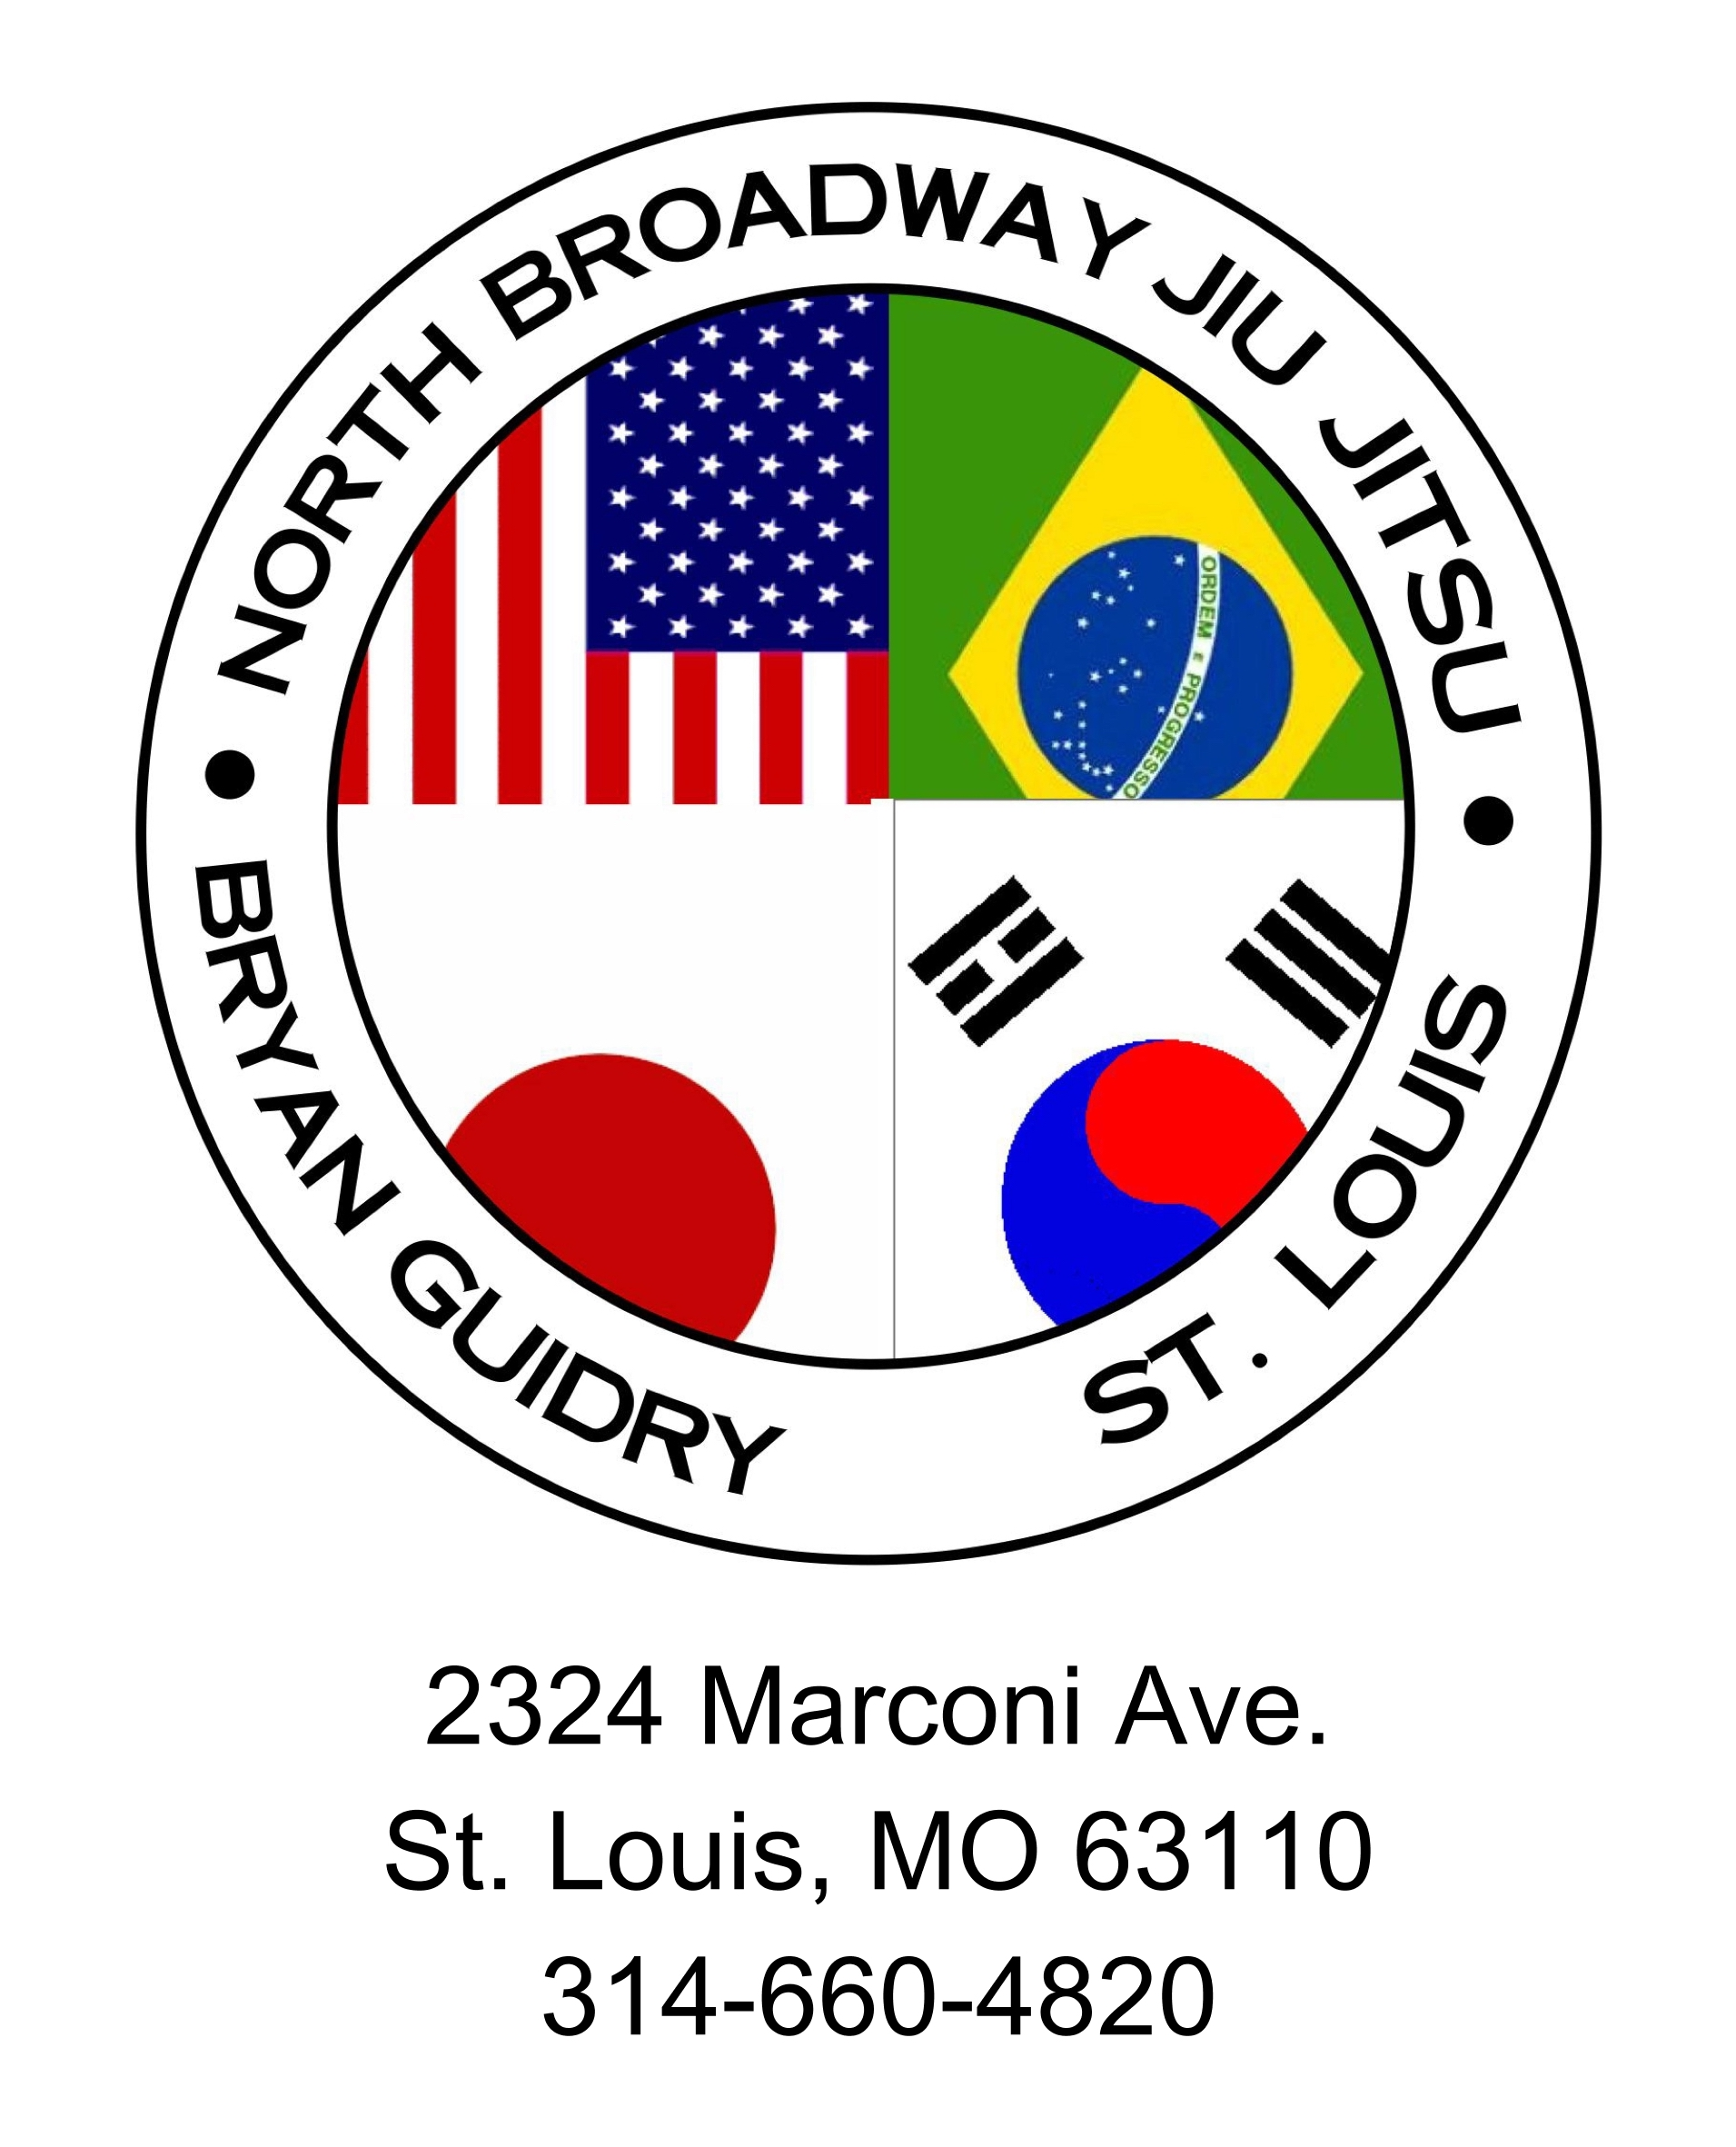 North Broadway Jiu Jitsu Logo